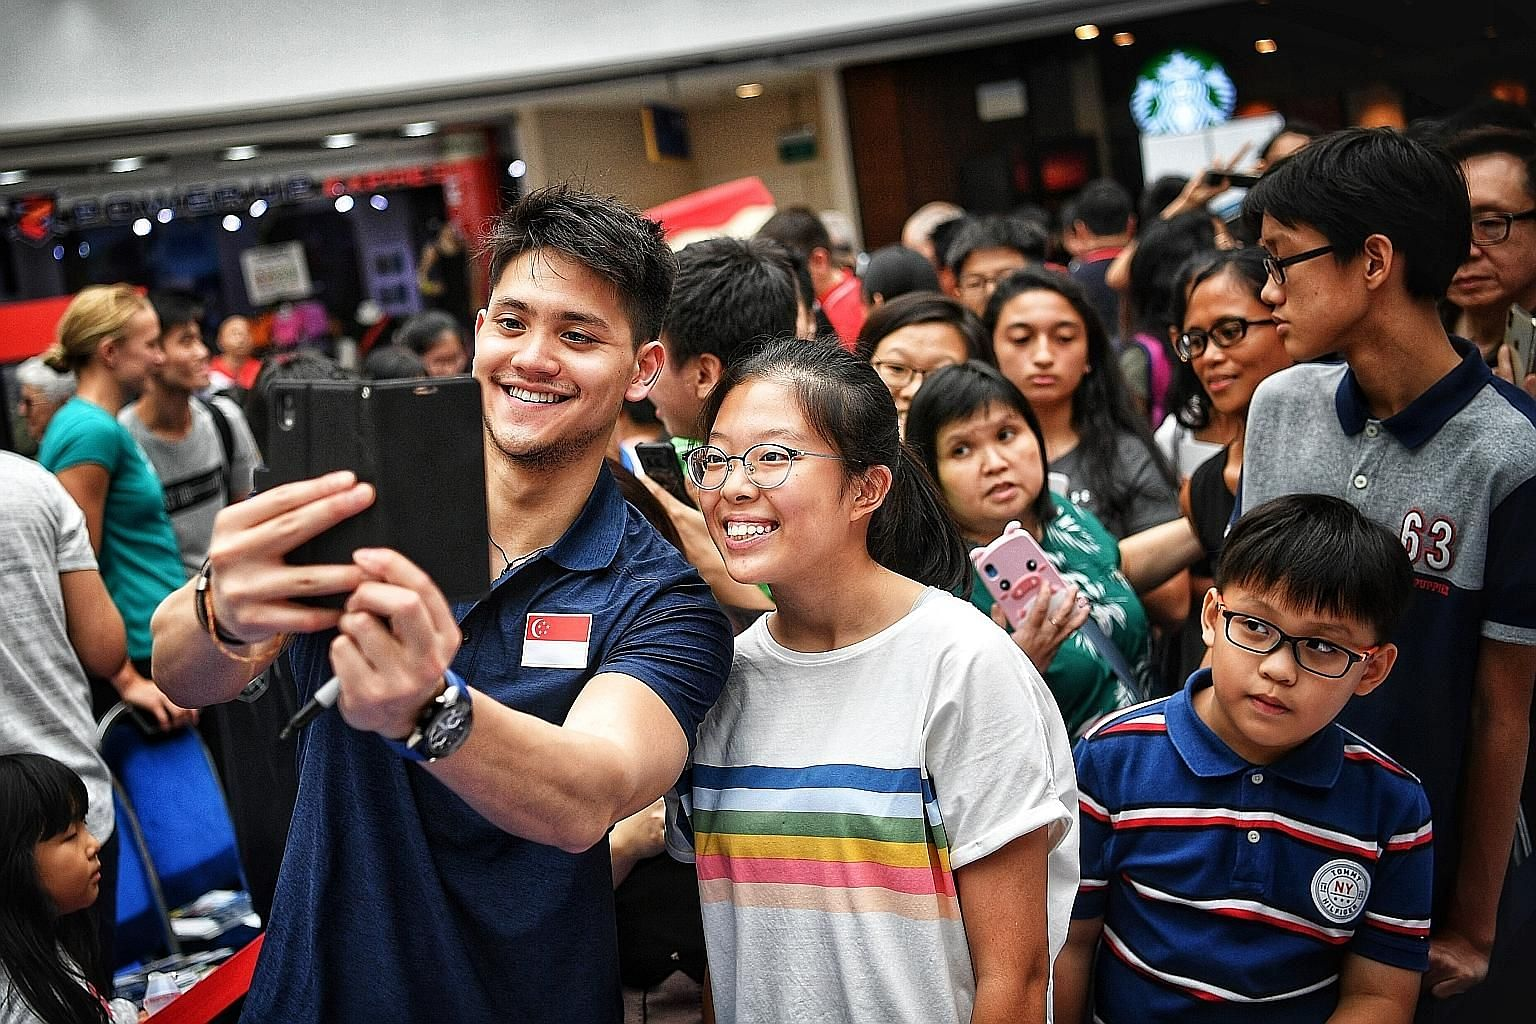 Olympic 100m butterfly gold medallist Joseph Schooling taking a wefie with a fan during the meet and greet session at Kallang Wave Mall yesterday, as other well-wishers wait in line.